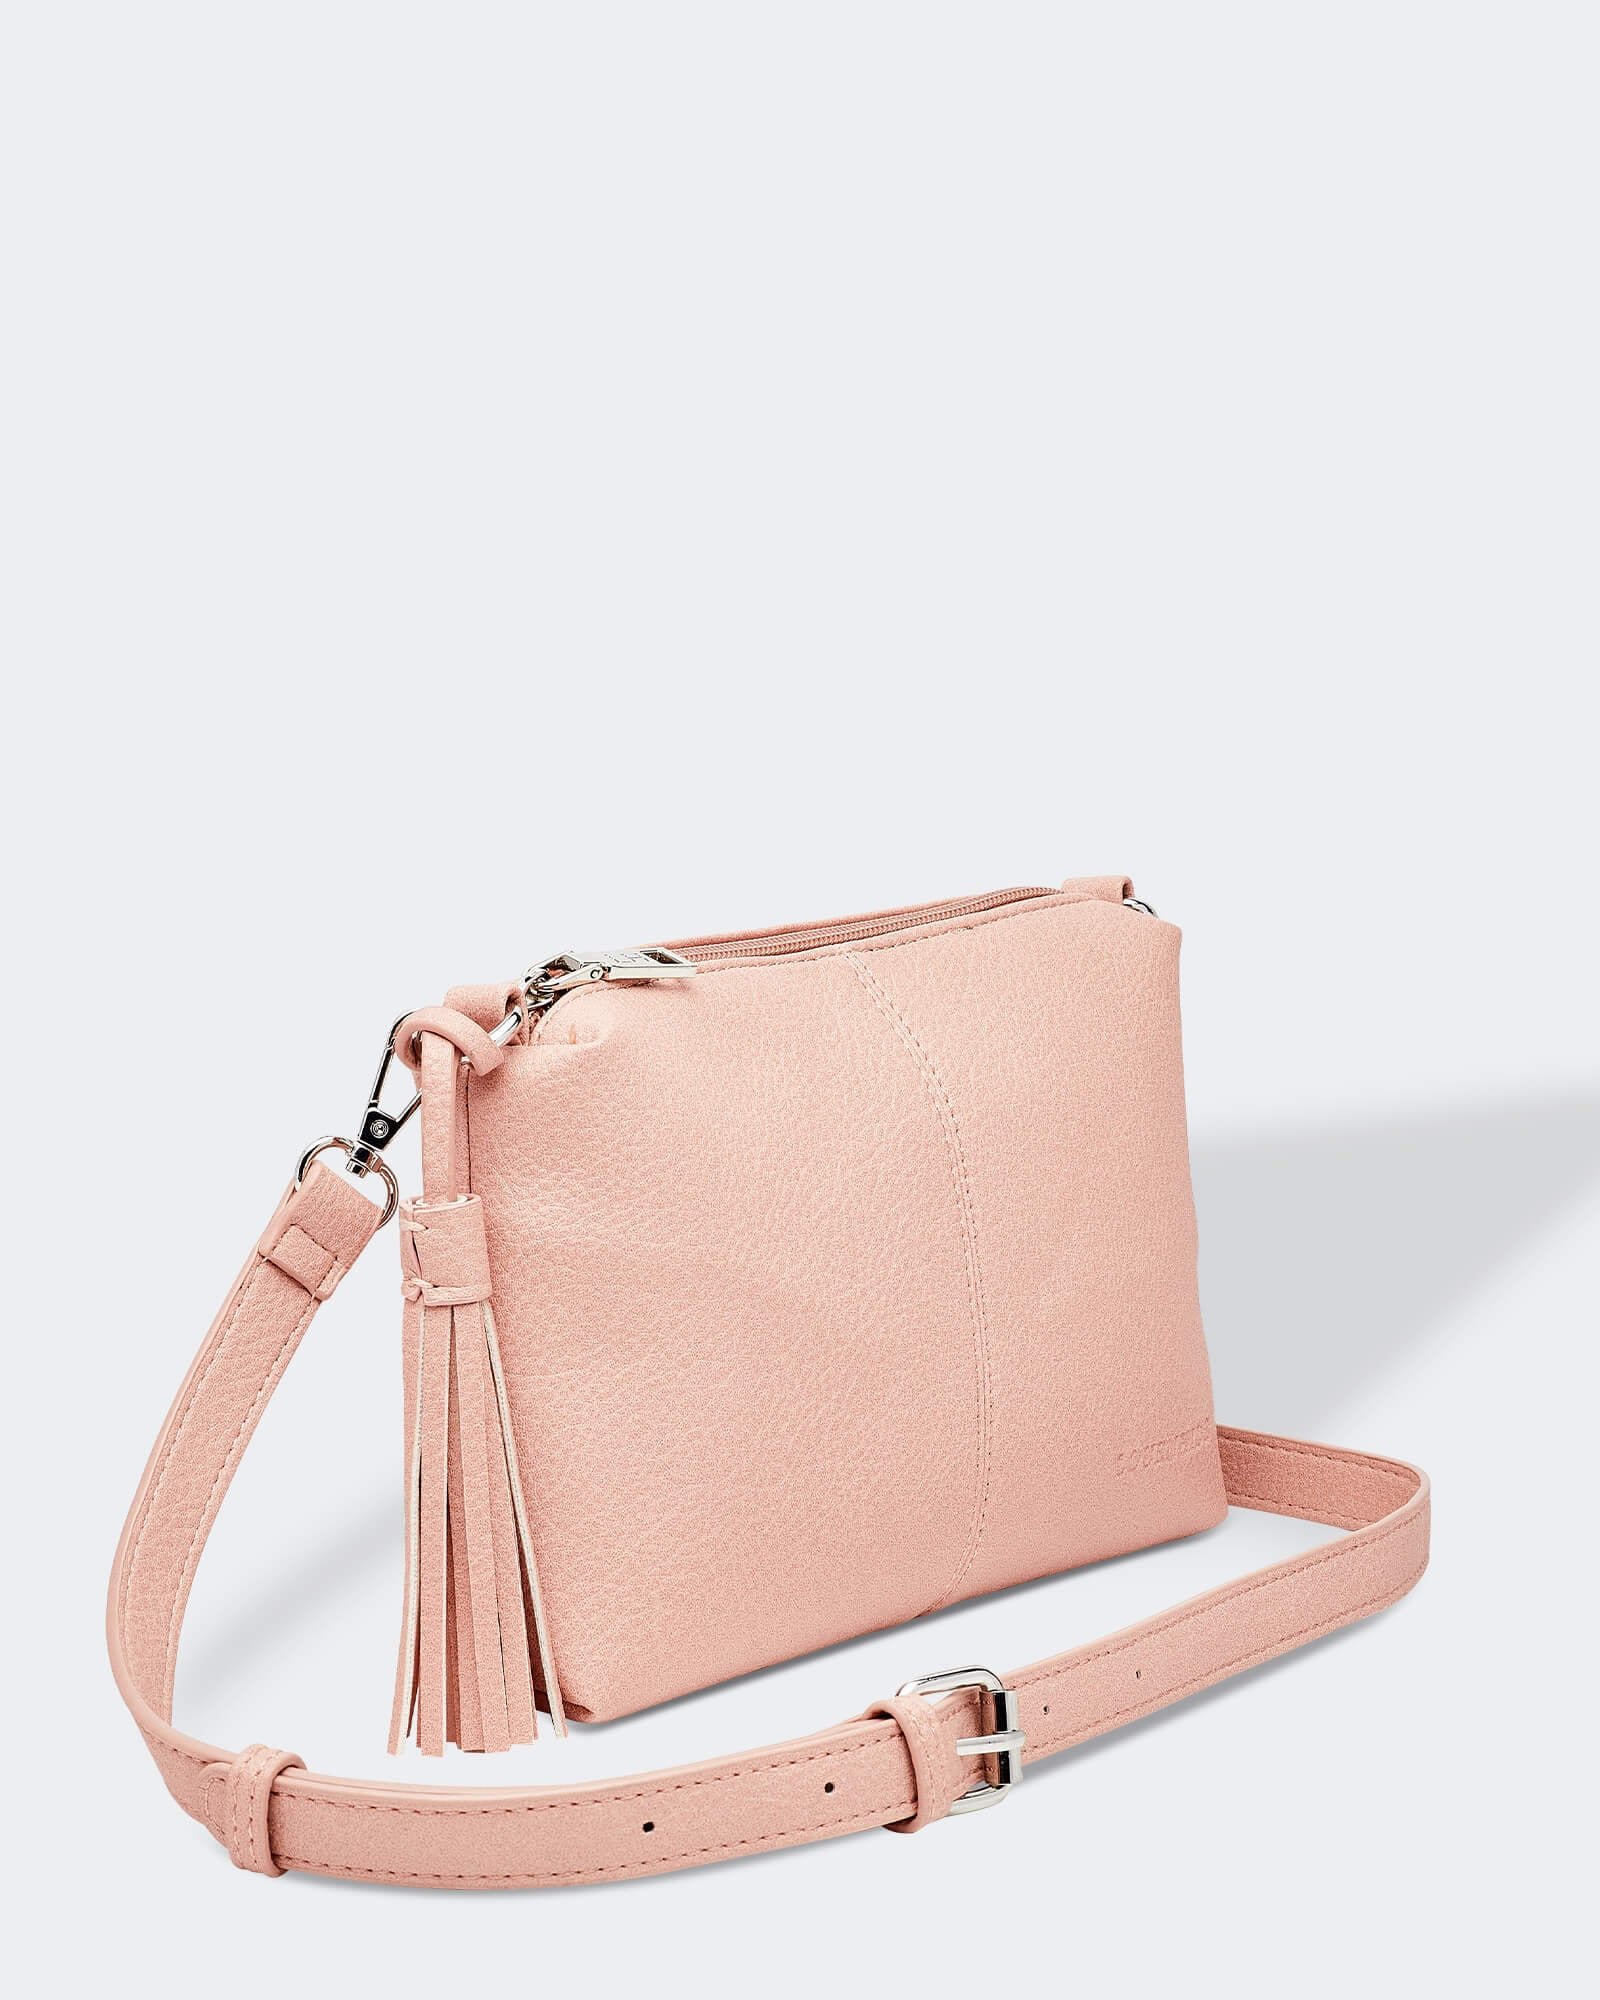 Baby Daisy Cross body Bag Louenhide Pale Pink PU